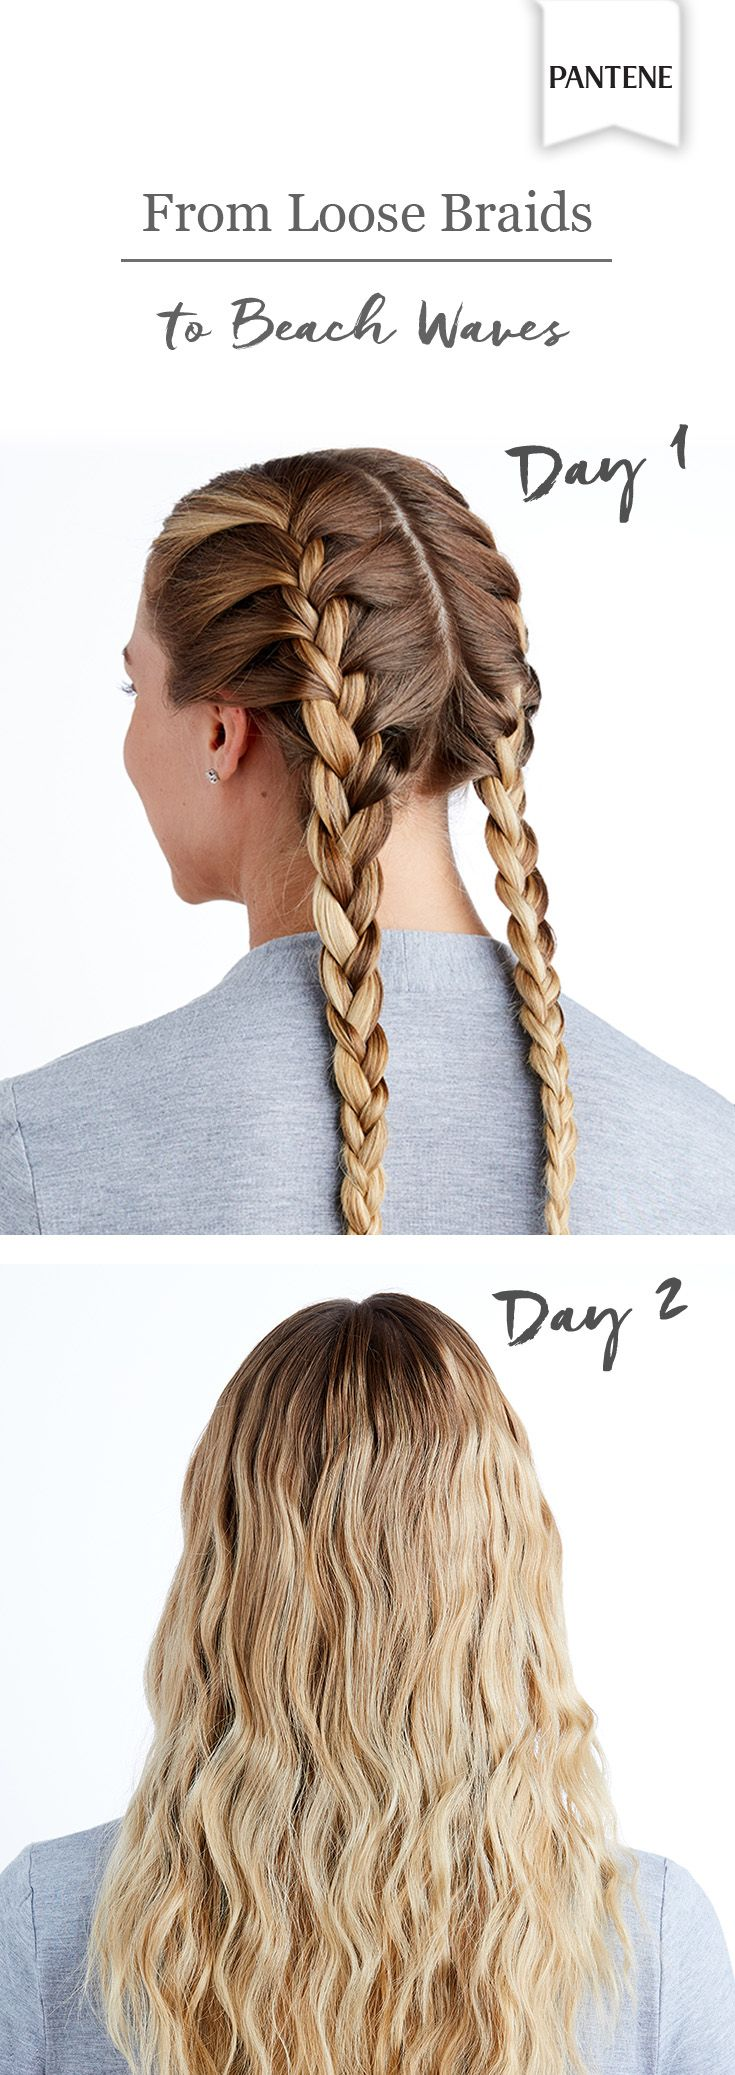 For an easy secondday hairstyle just wear your hair in